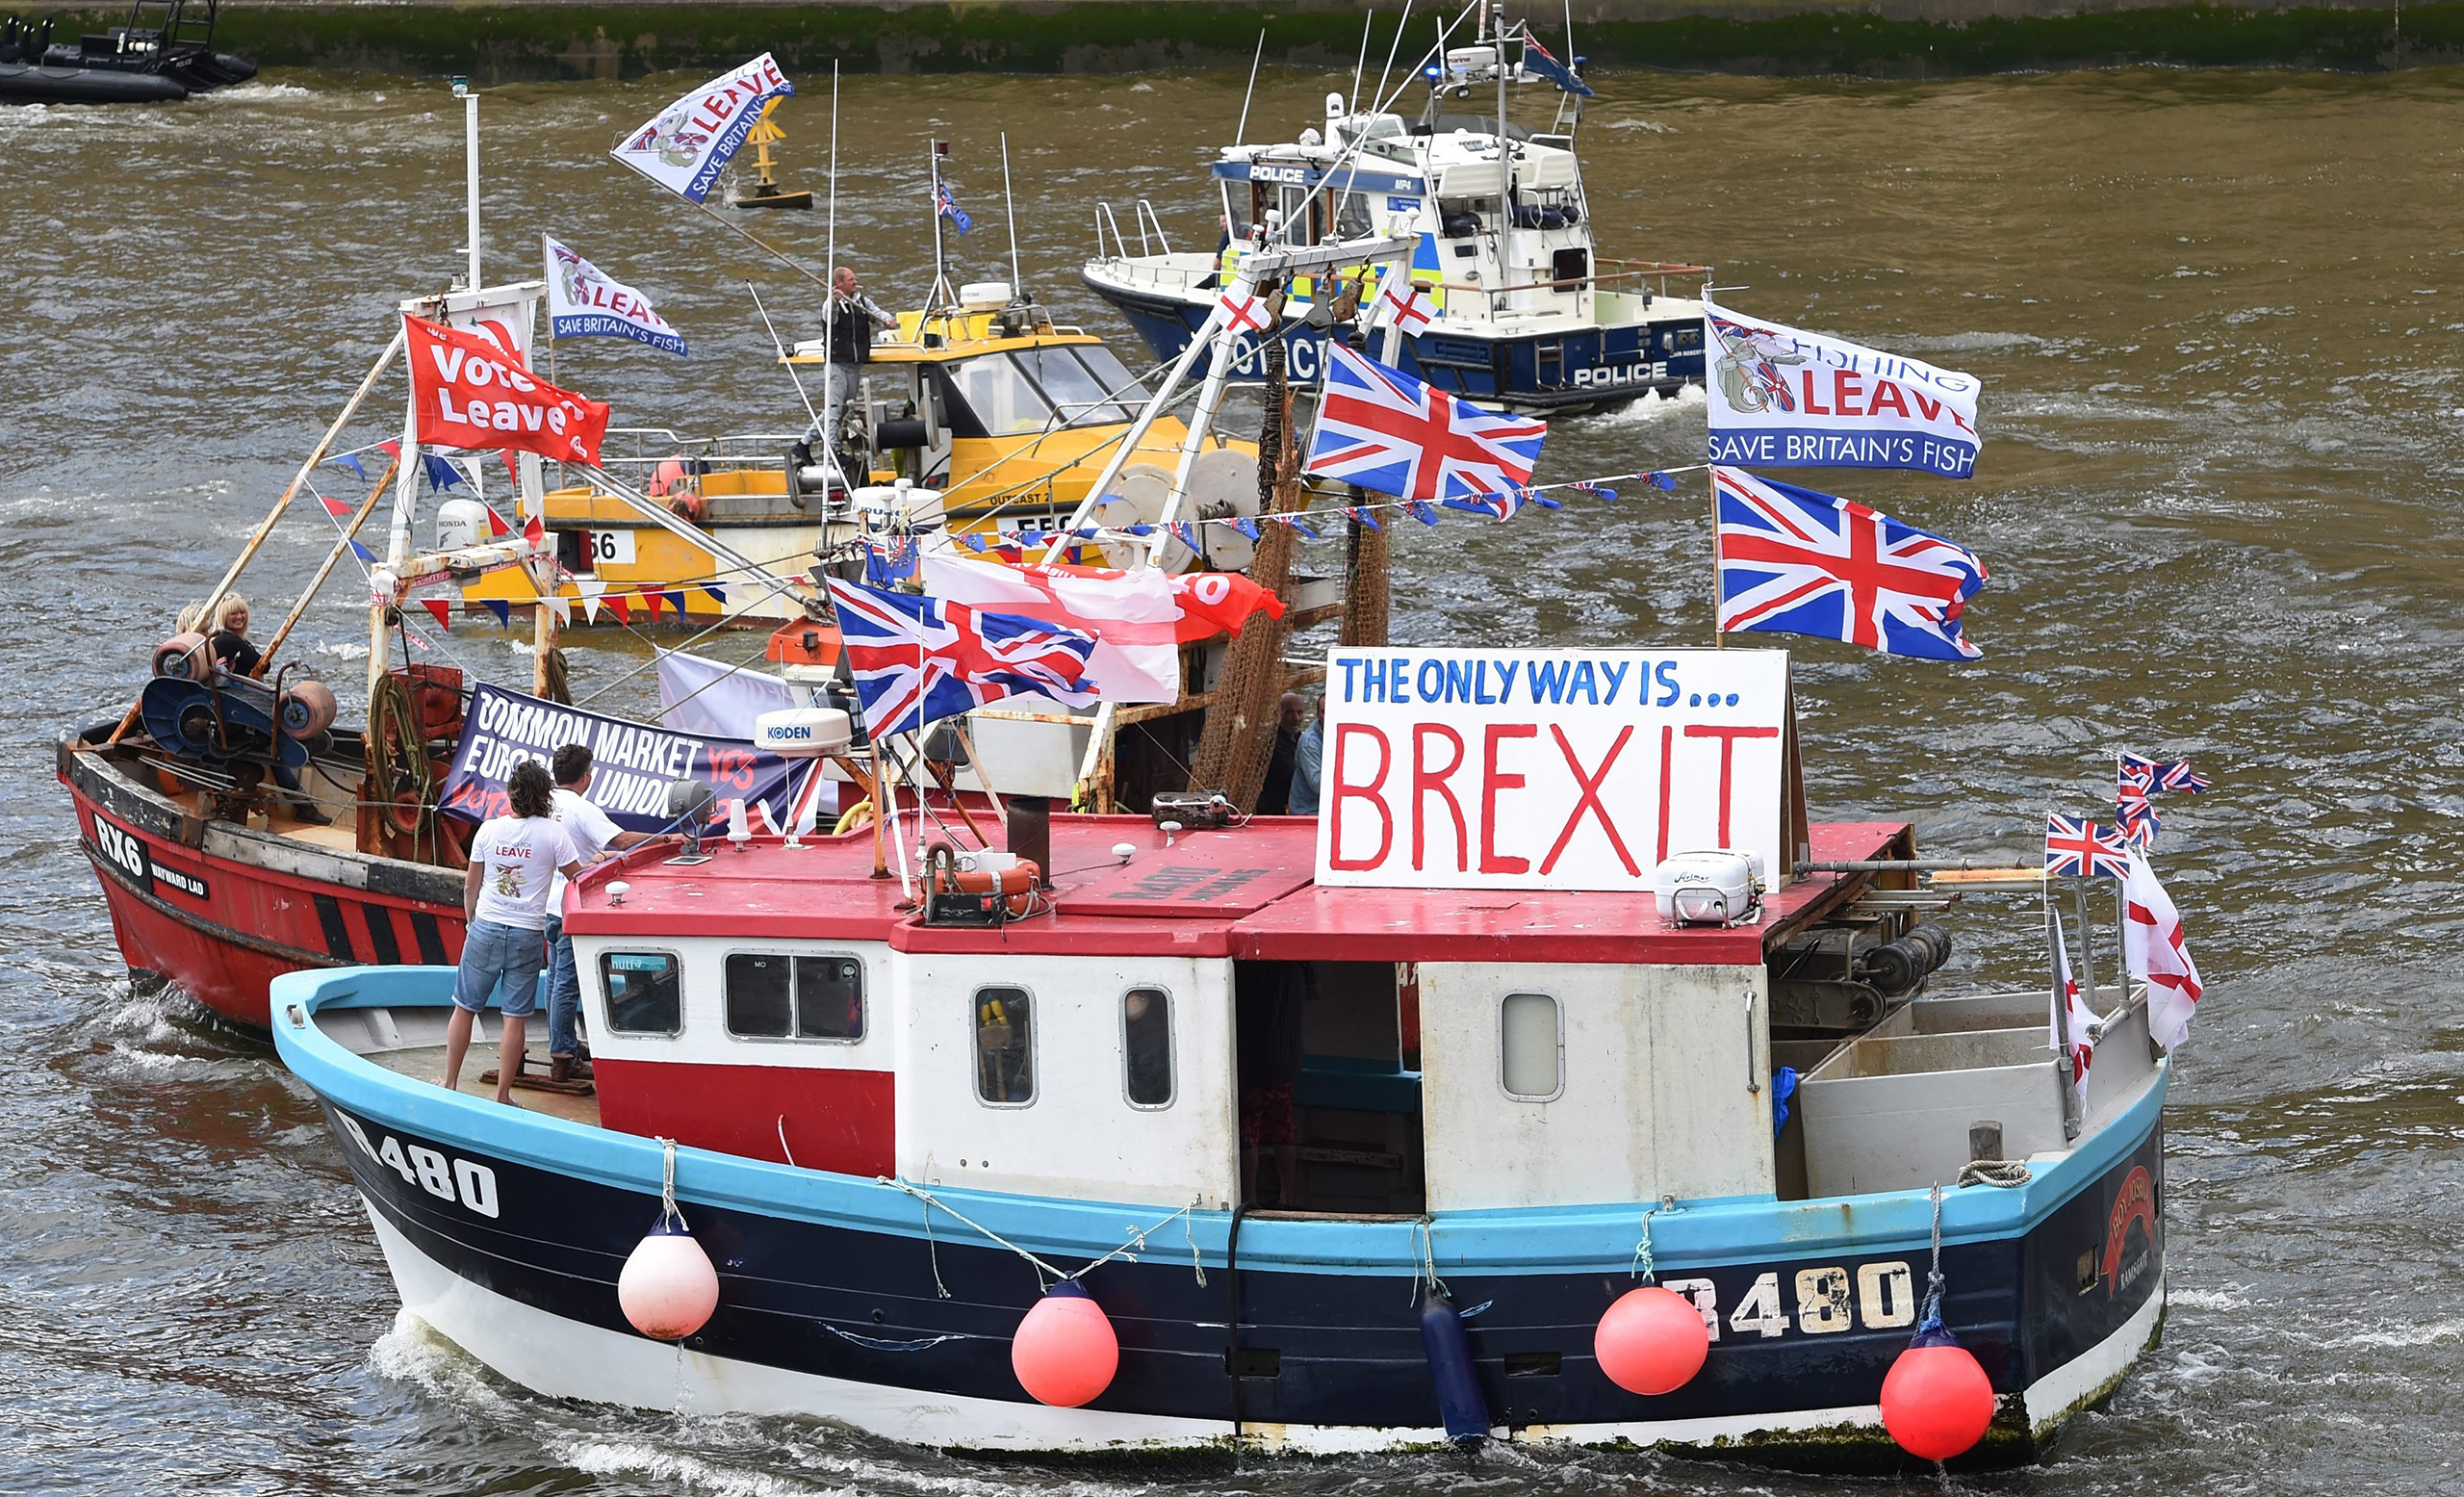 A flotilla of fishing trawlers, organized by UKIP leader Nigel Farage, sails up the river Thames next to the Houses of Parliament in London, June 15, 2016.